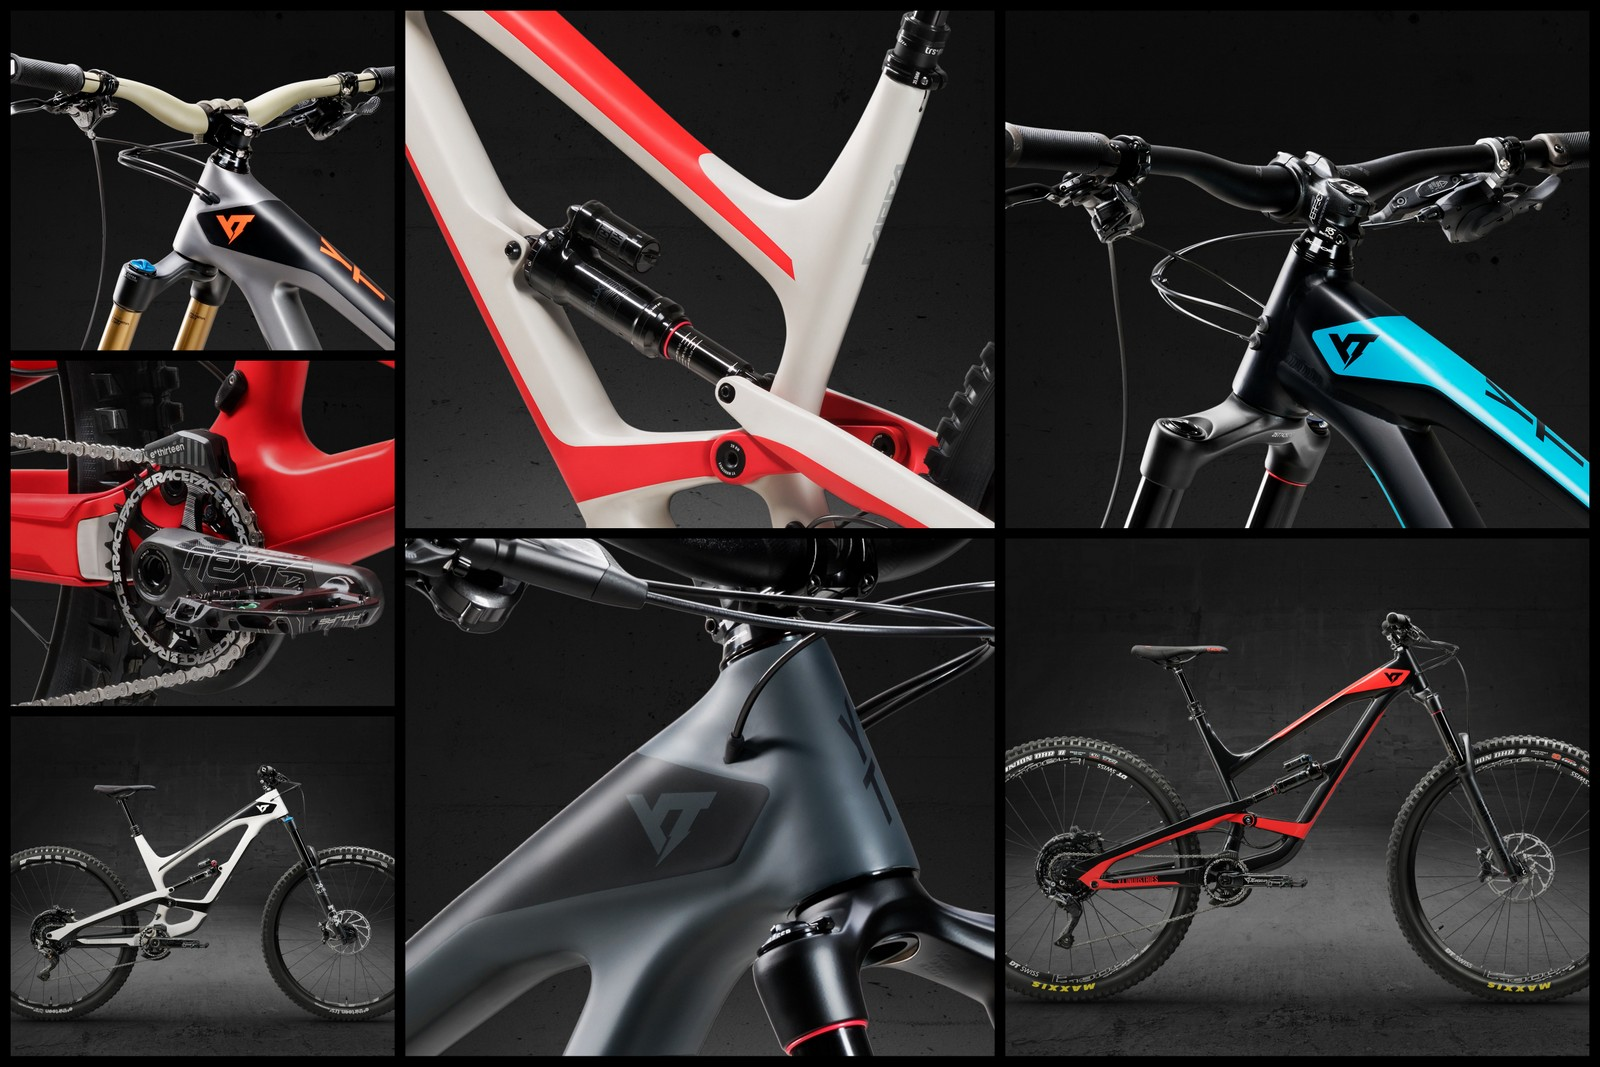 The Capra is an enigma, available in two wheel sizes and seven color schemes.